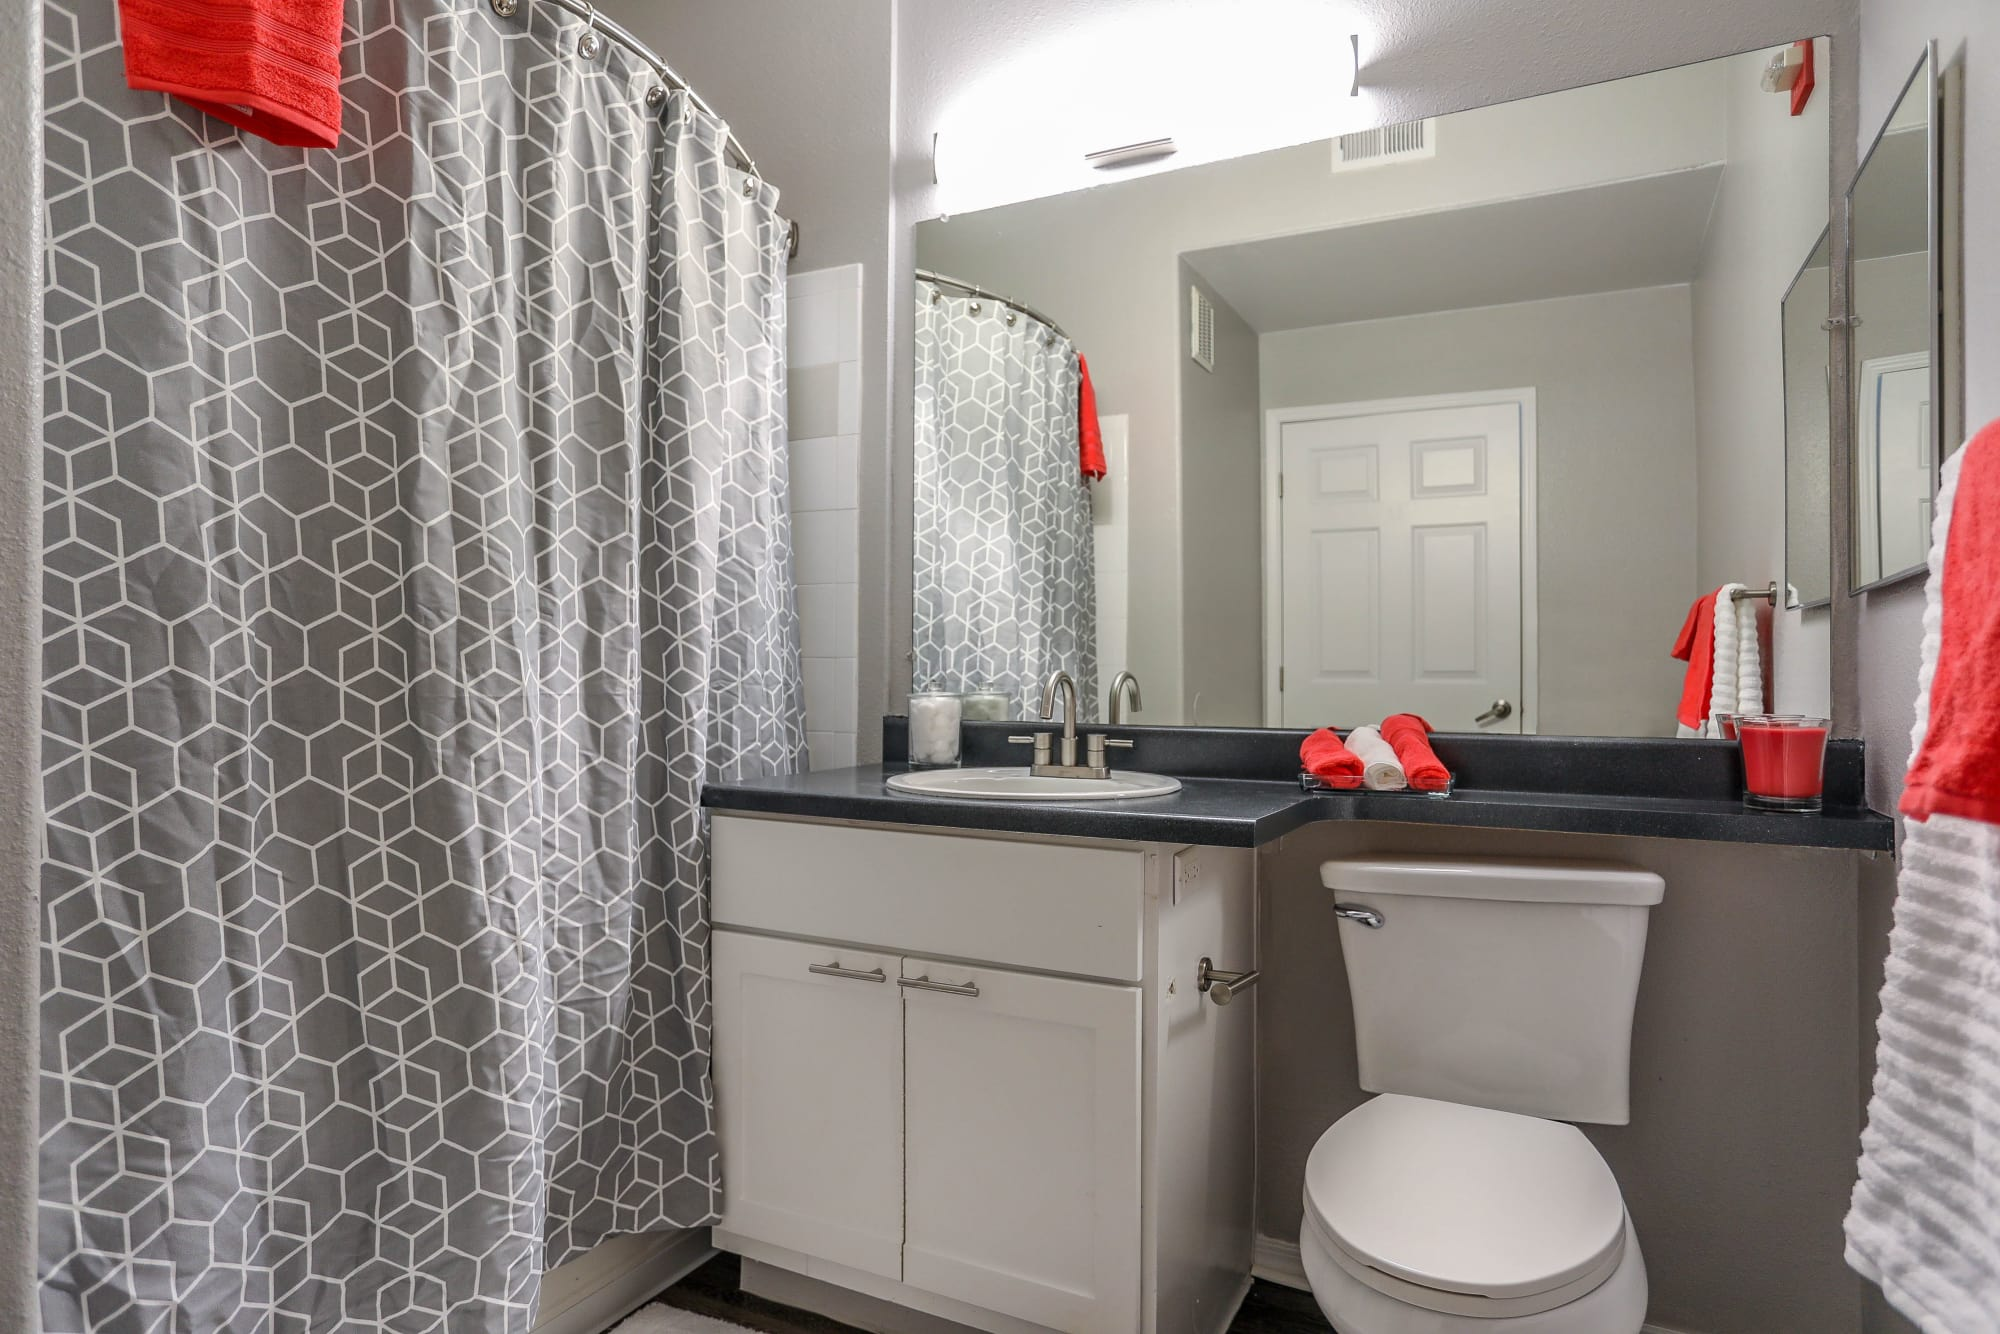 White cabinetry in a bathroom at Promenade at Hunter's Glen Apartments in Thornton, Colorado